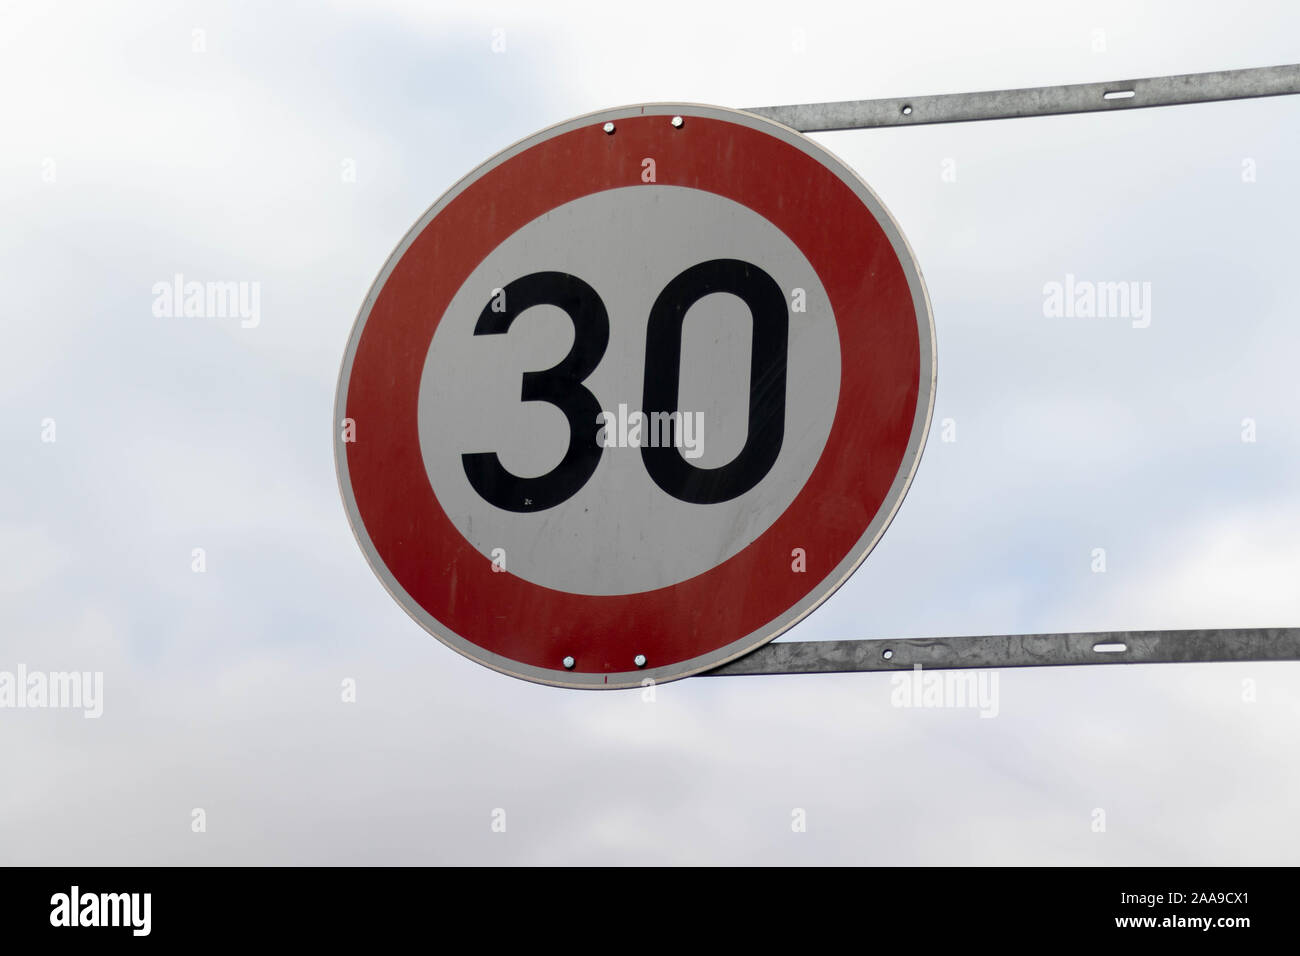 German round, red 30 km/h traffic sign Stock Photo